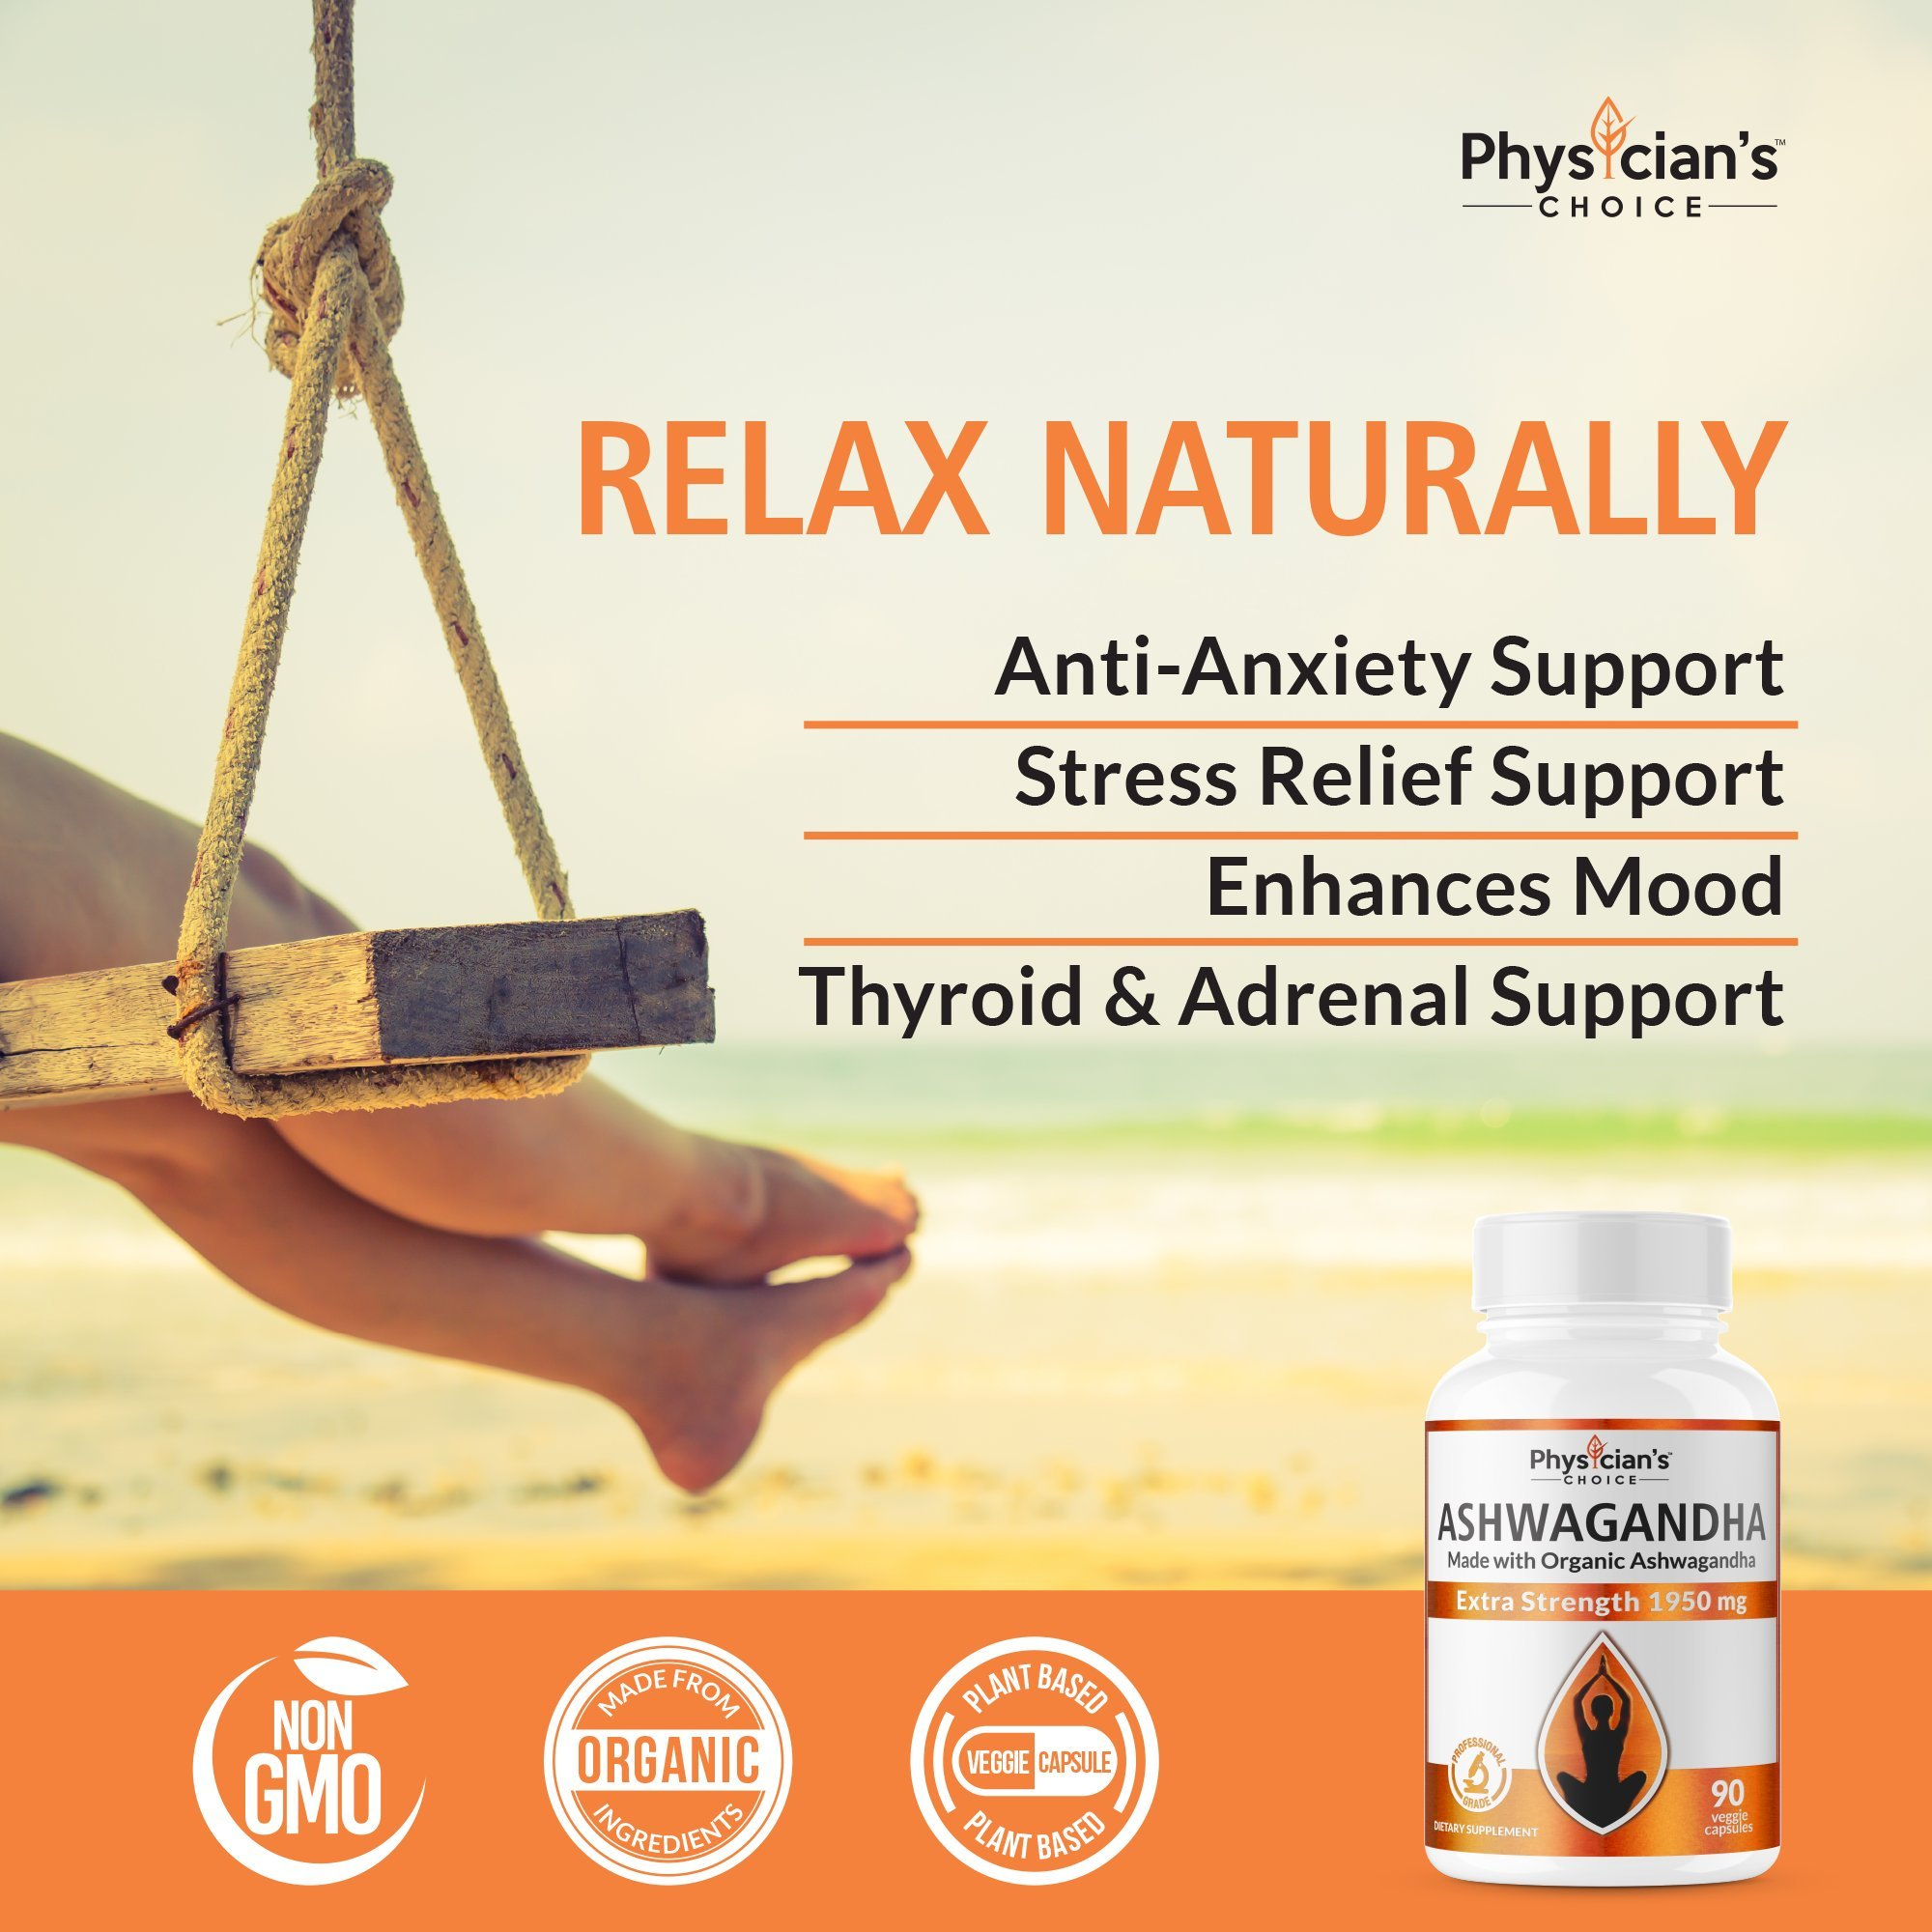 Ashwagandha 1950mg Organic Ashwagandha Root Powder Extract of Black Pepper Anxiety Relief, Thyroid Support, Cortisol & Adrenal Support, Anti Anxiety & Adrenal Fatigue Supplements 90 Veggie Capsules by PhysiciansChoice (Image #6)